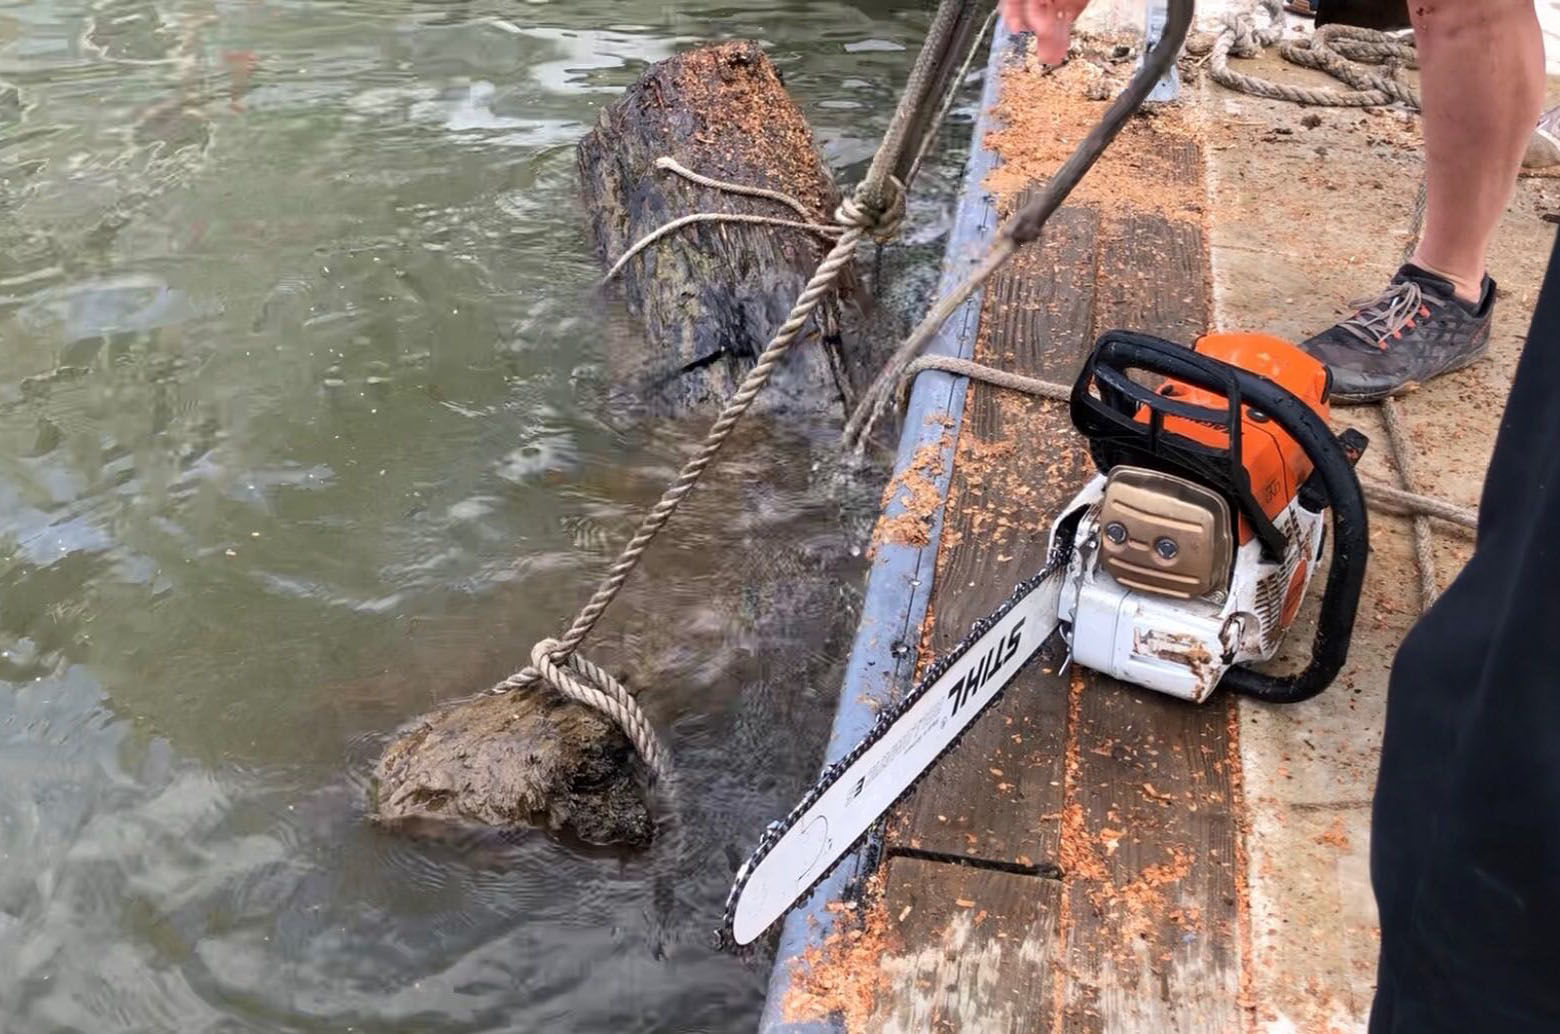 Who knew chain saws can be used partially submerged in water? (WTOP/Kristi King)